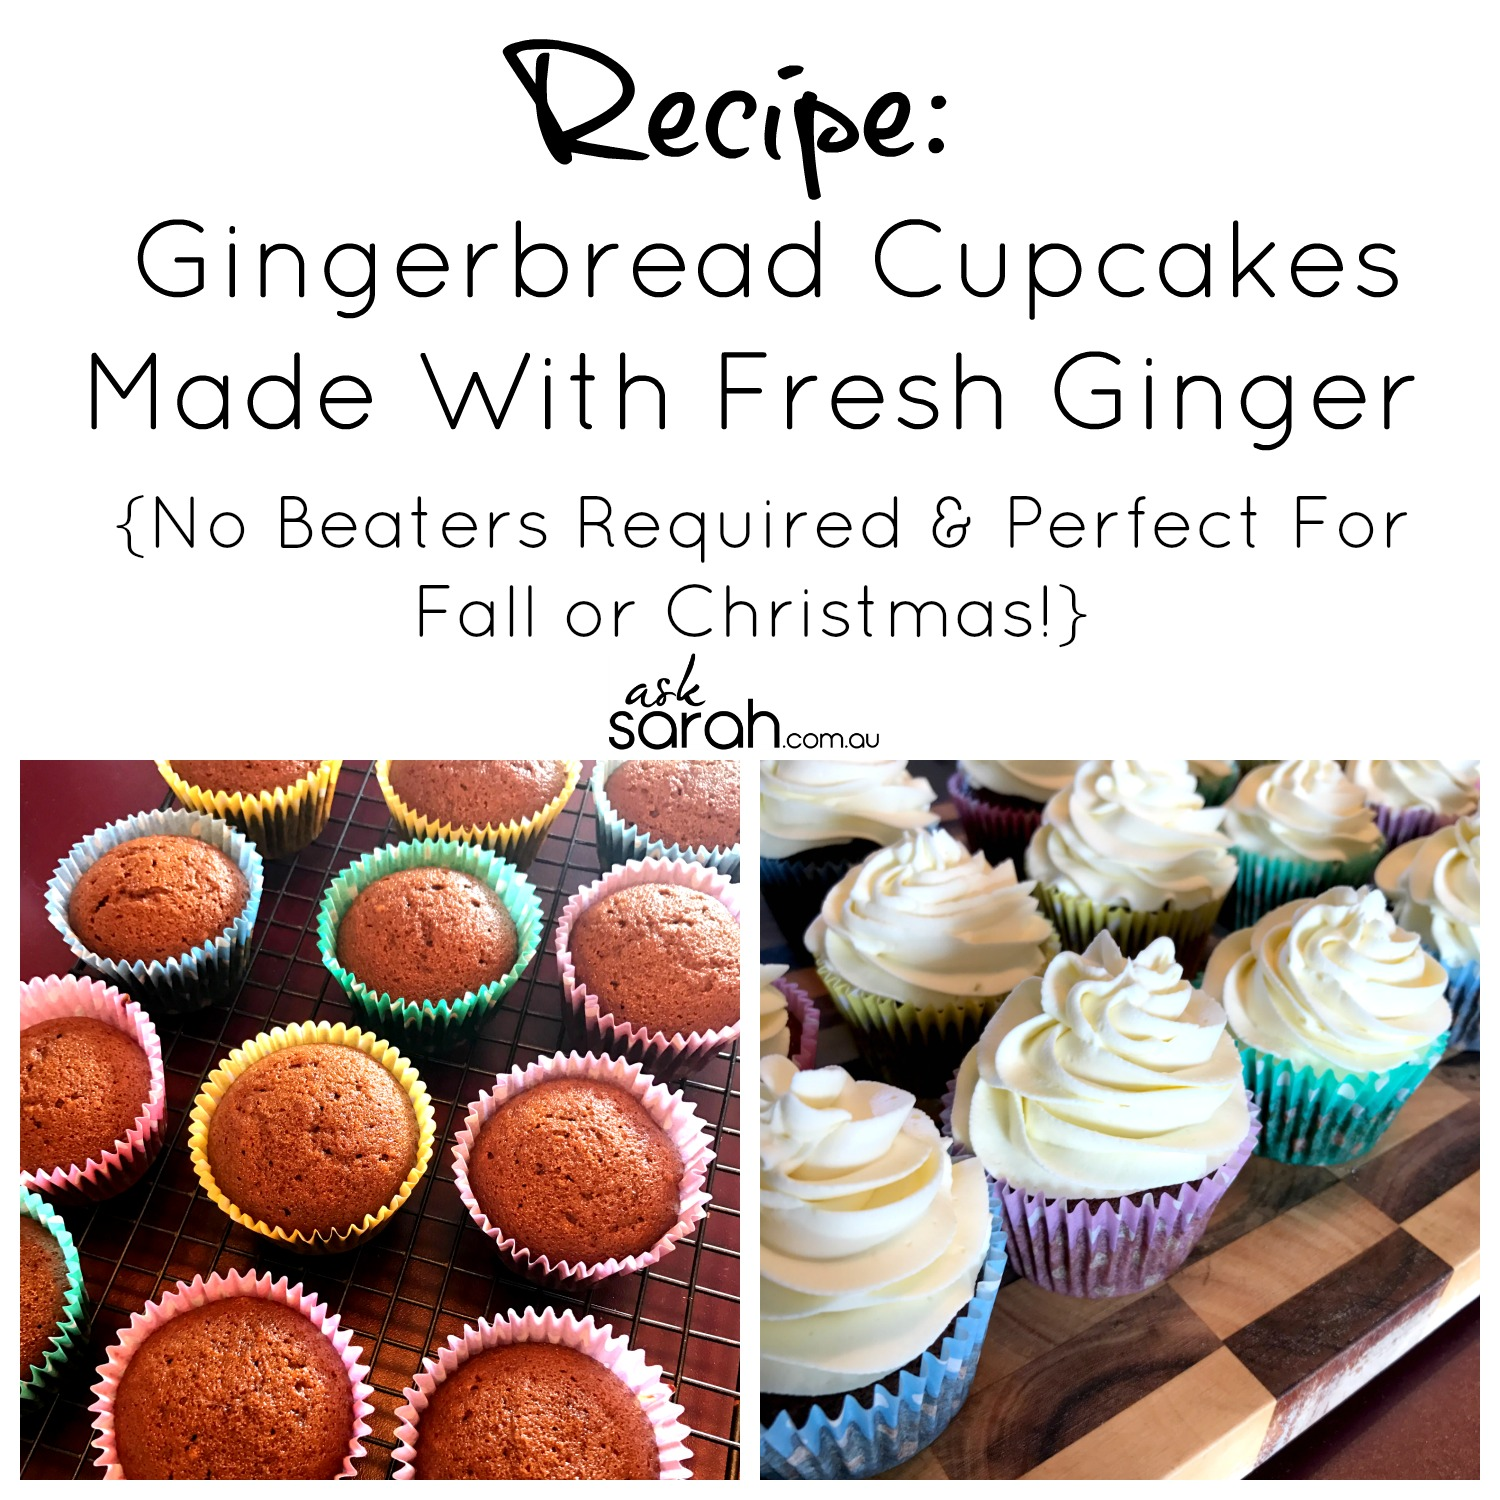 Recipe: Gingerbread Cupcakes Made With Fresh Ginger {No Beaters Required & Perfect For Fall or Christmas!}